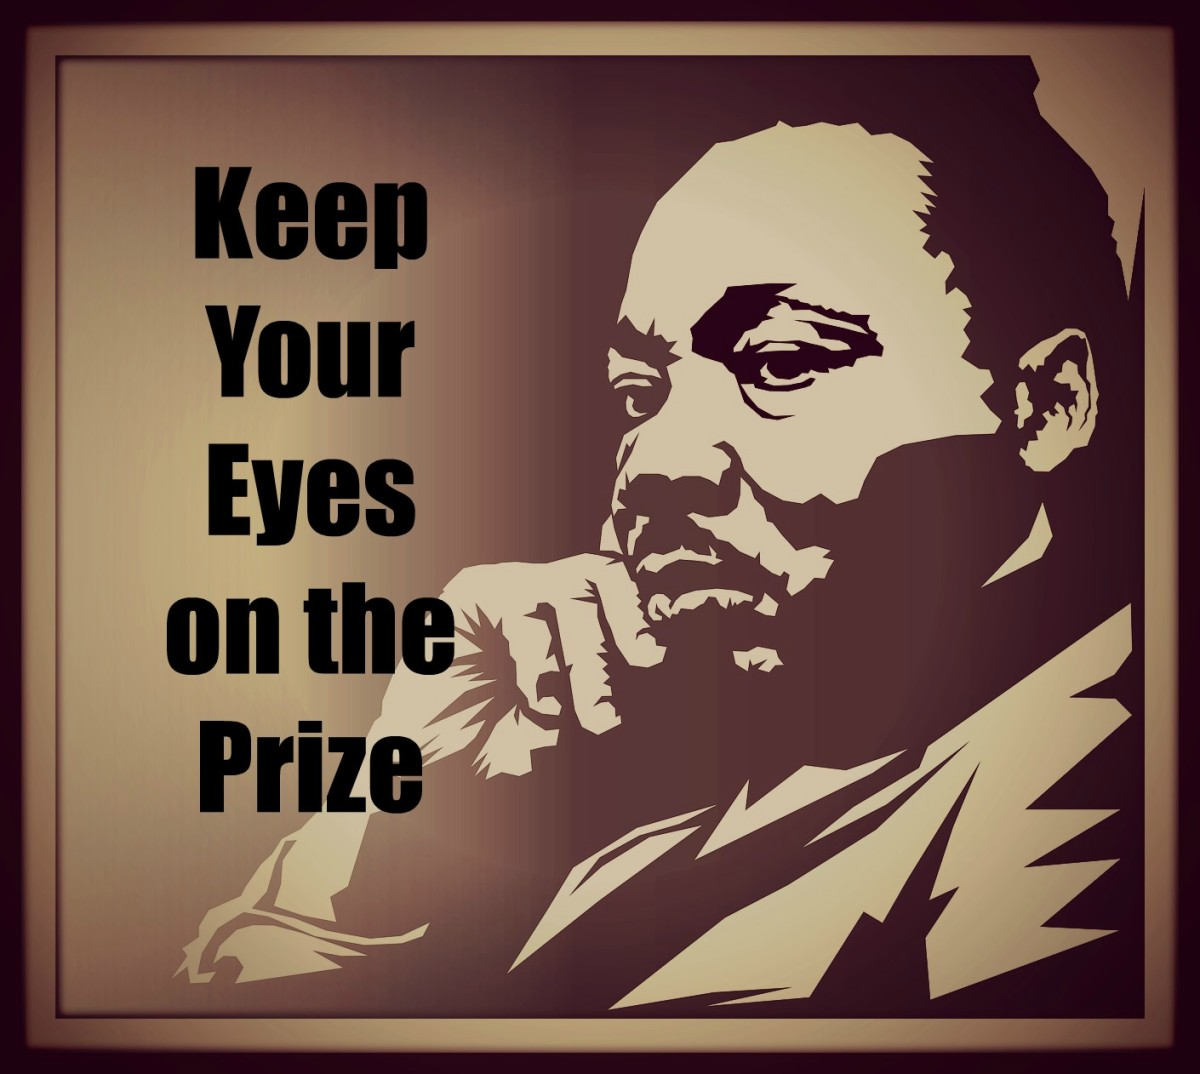 Martin Luther King, Jr. had a motto: Keep Your Eyes on the Prize.